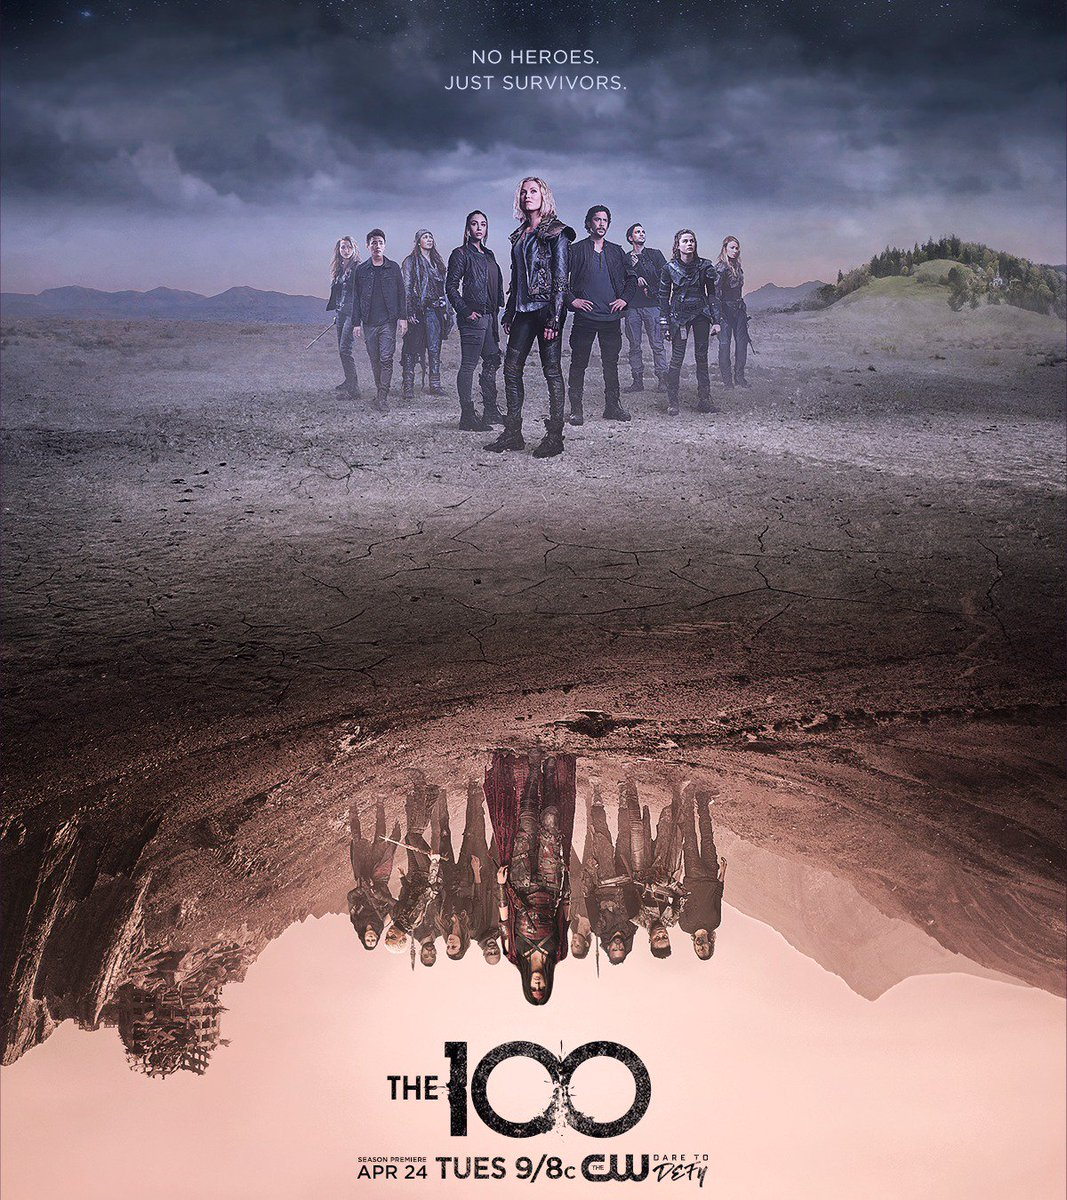 No heroes. Just survivors. #The100 returns Tuesday, April 24 on The CW! https://t.co/Hj1tOSwhKv